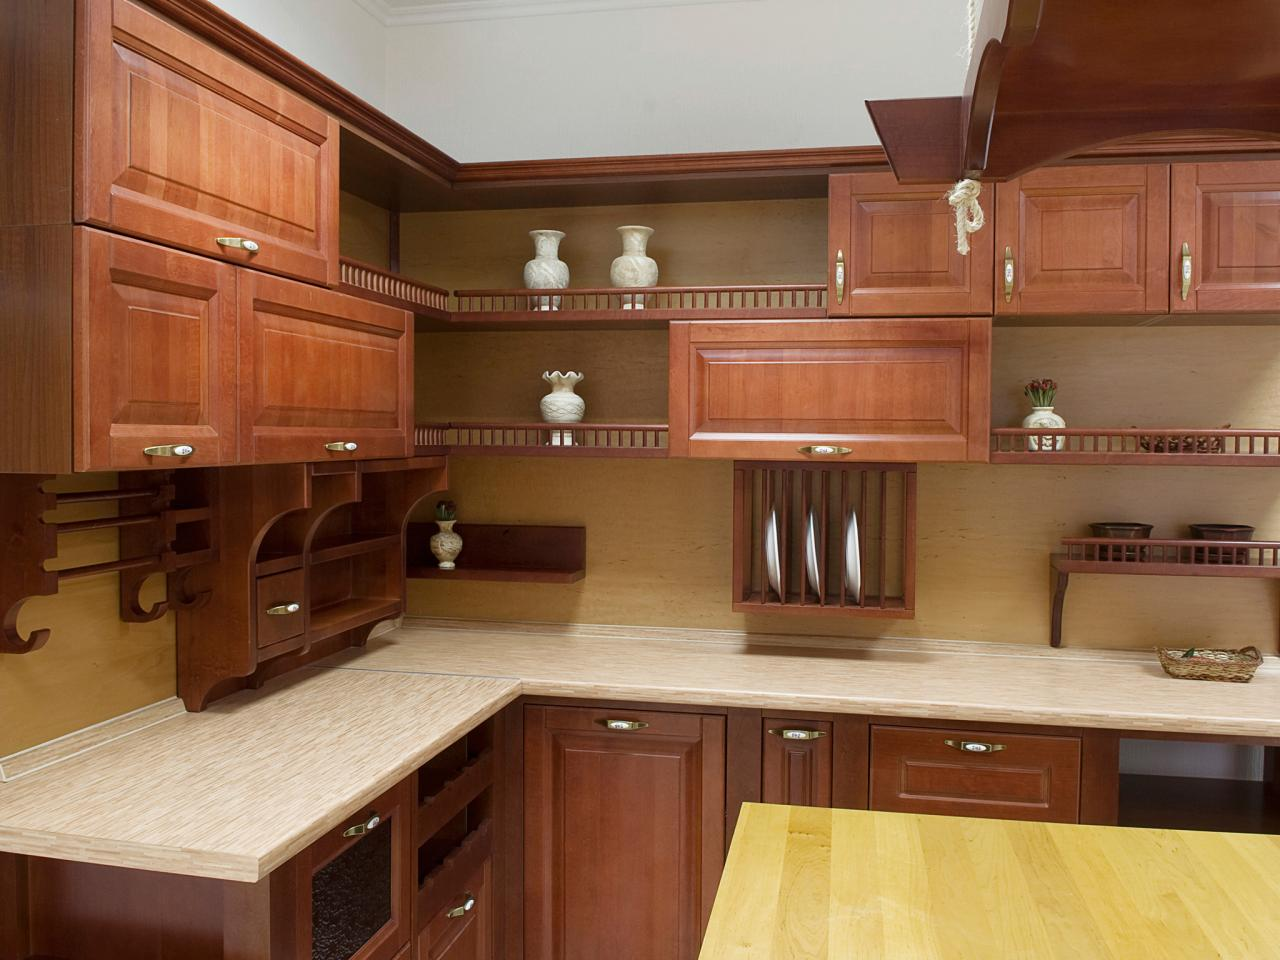 Open Kitchen Cabinets Pictures Ideas & Tips From HGTV HGTV